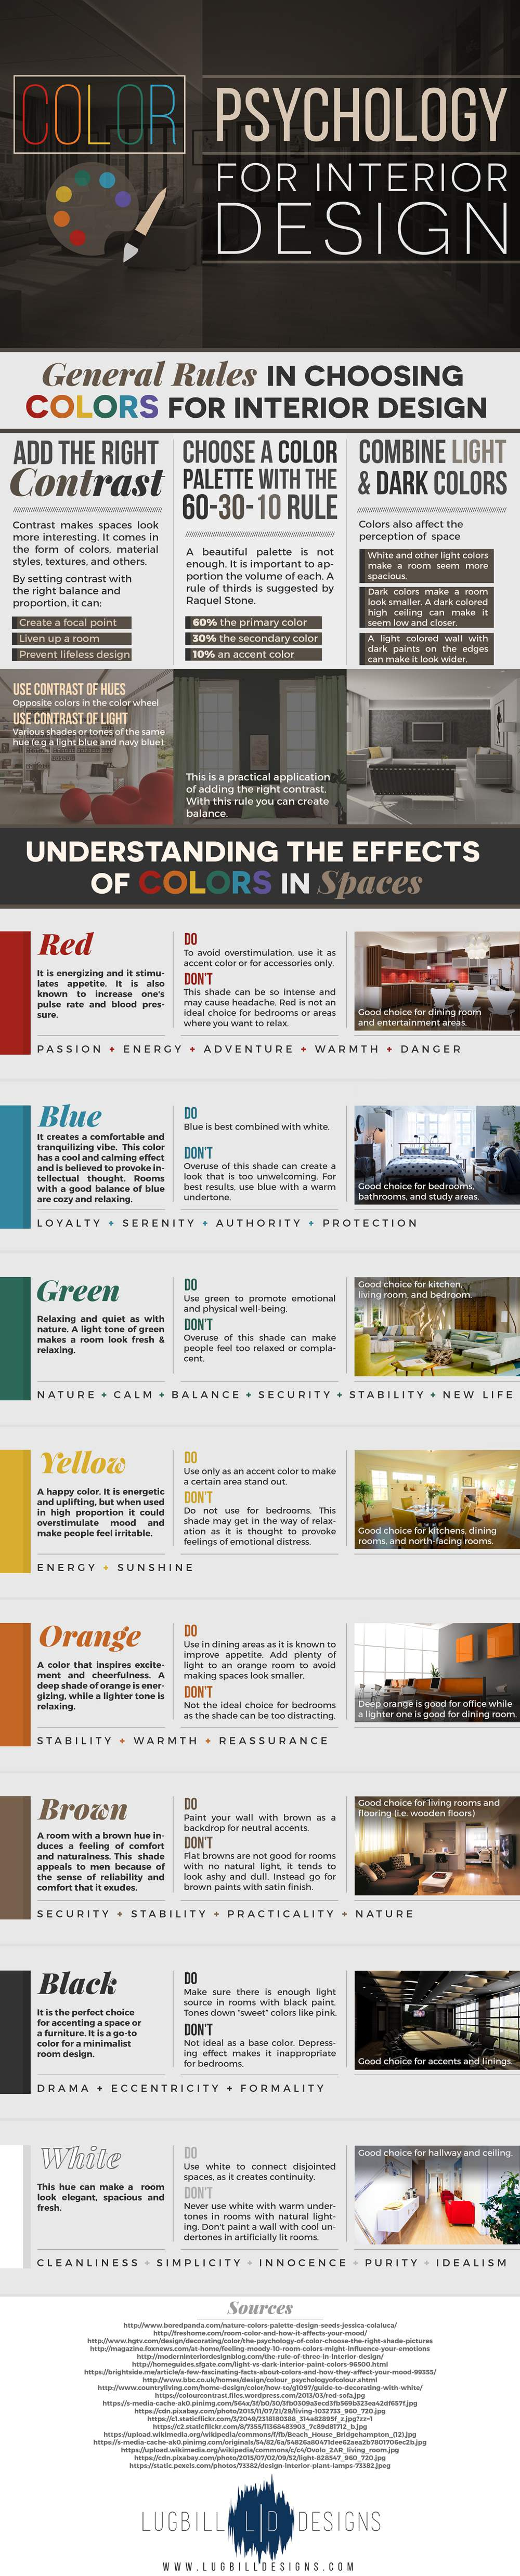 Color Psychology For Interior Design